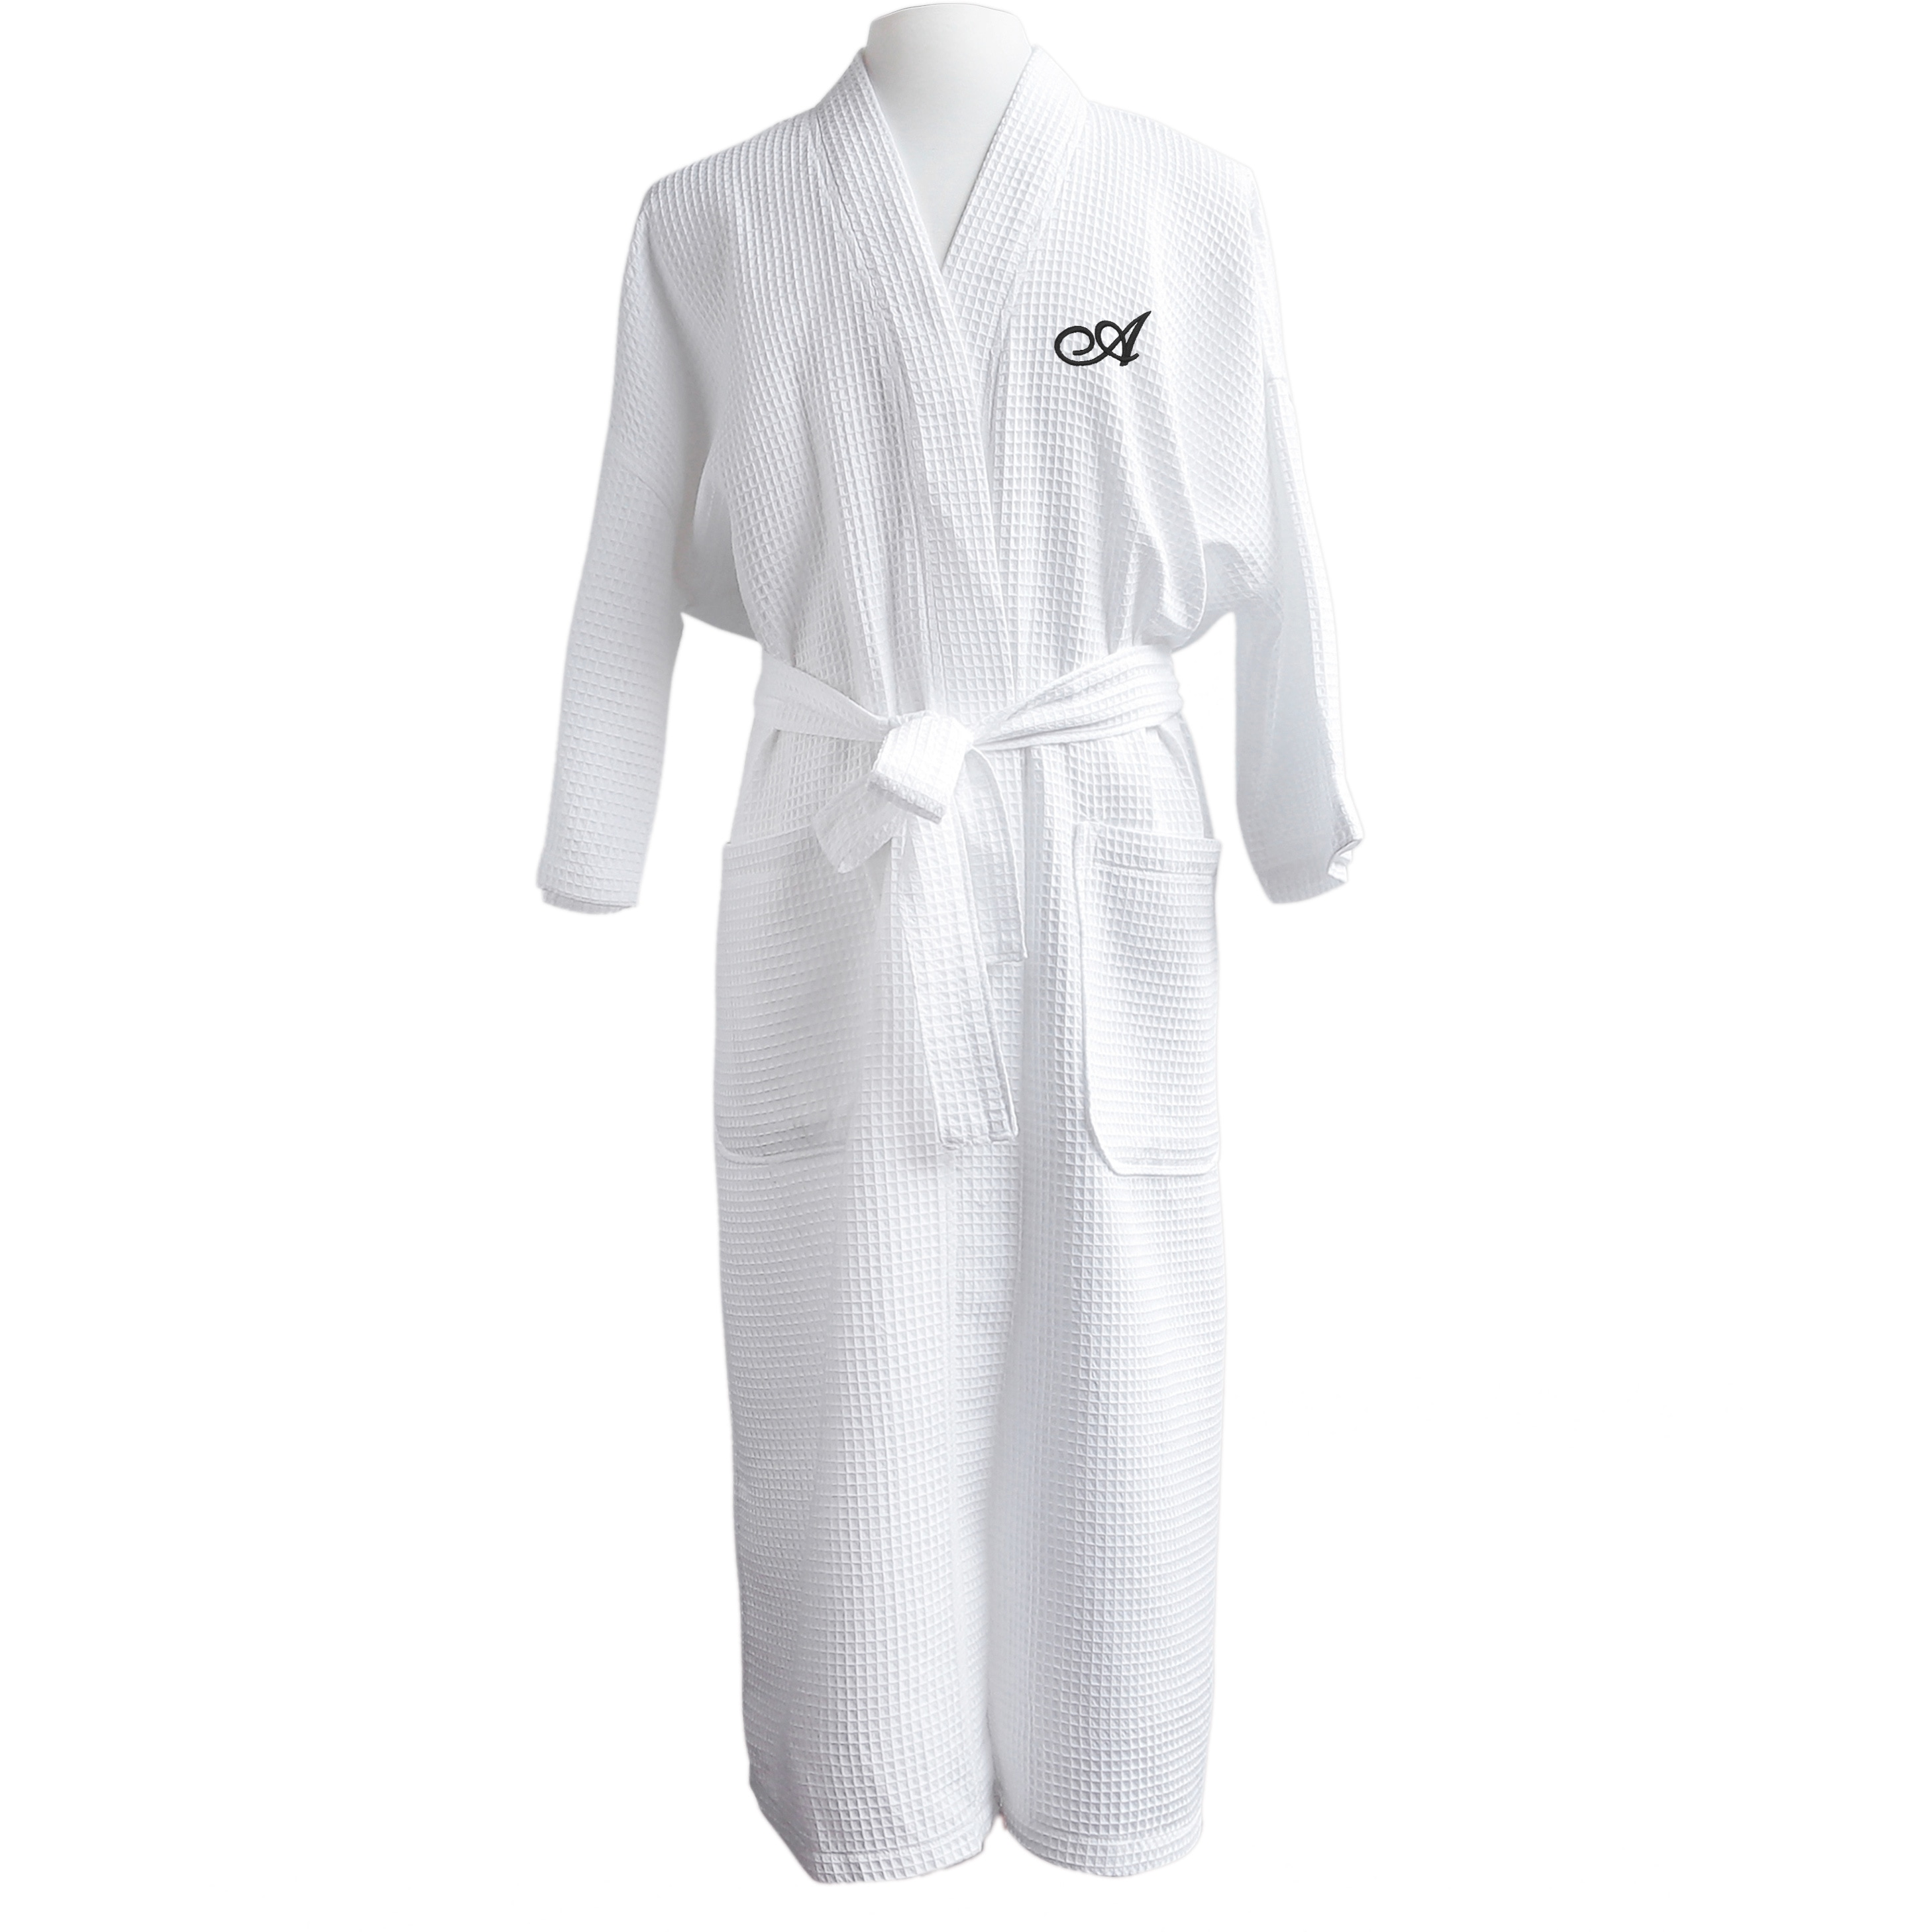 6b6a315ffe Shop Finley Unisex Egyptian Cotton Monogram Waffle Spa Robe - Free ...